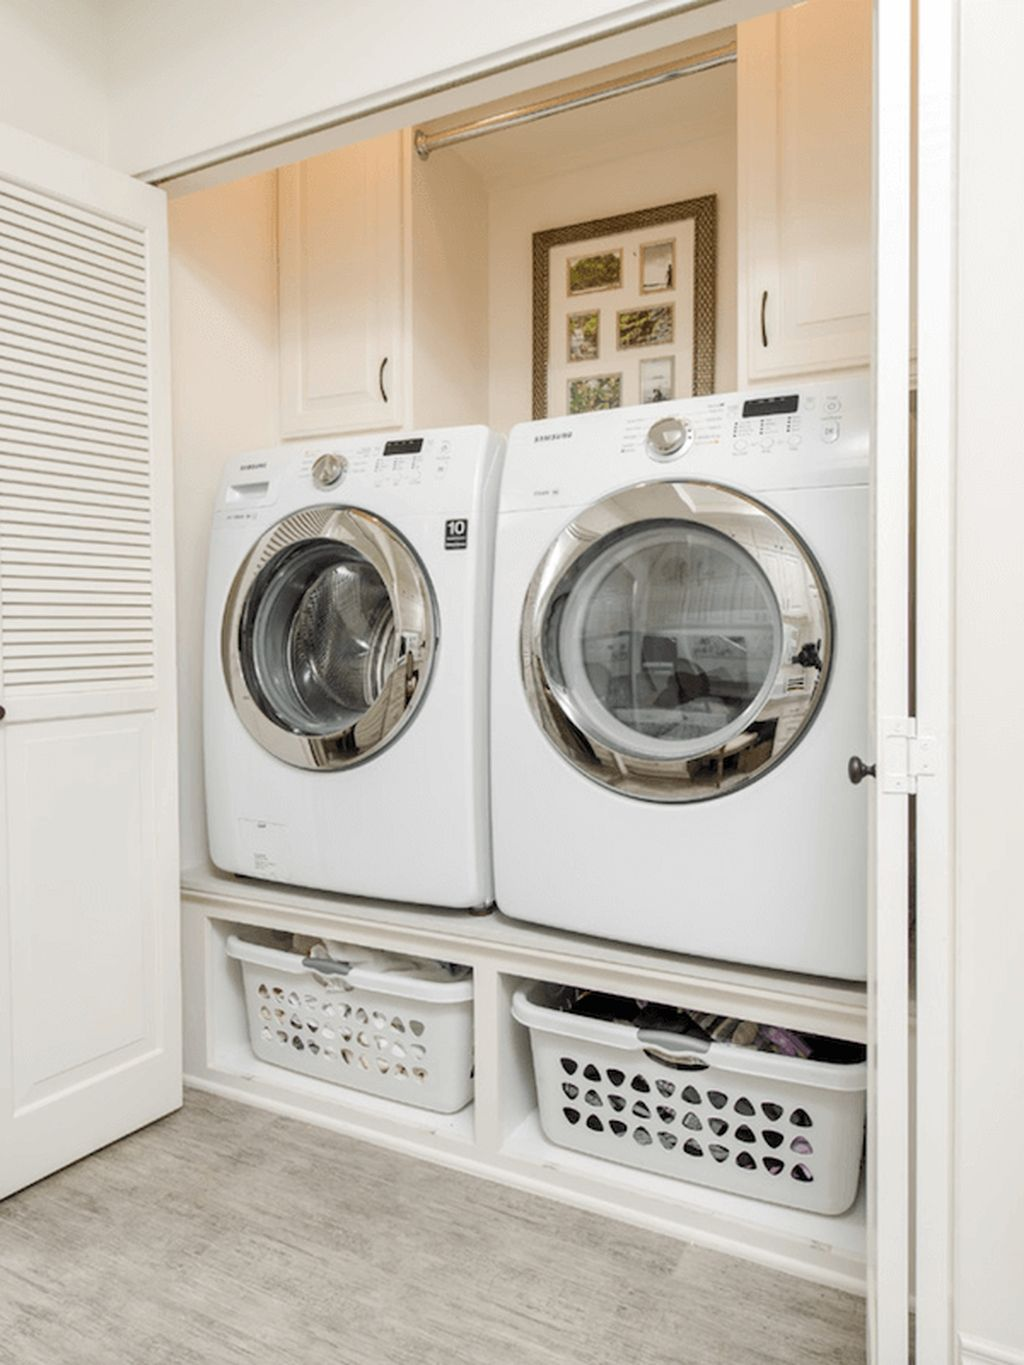 38 Hottest Laundry Closet Ideas To Save Space And Get Organized #laundryrooms